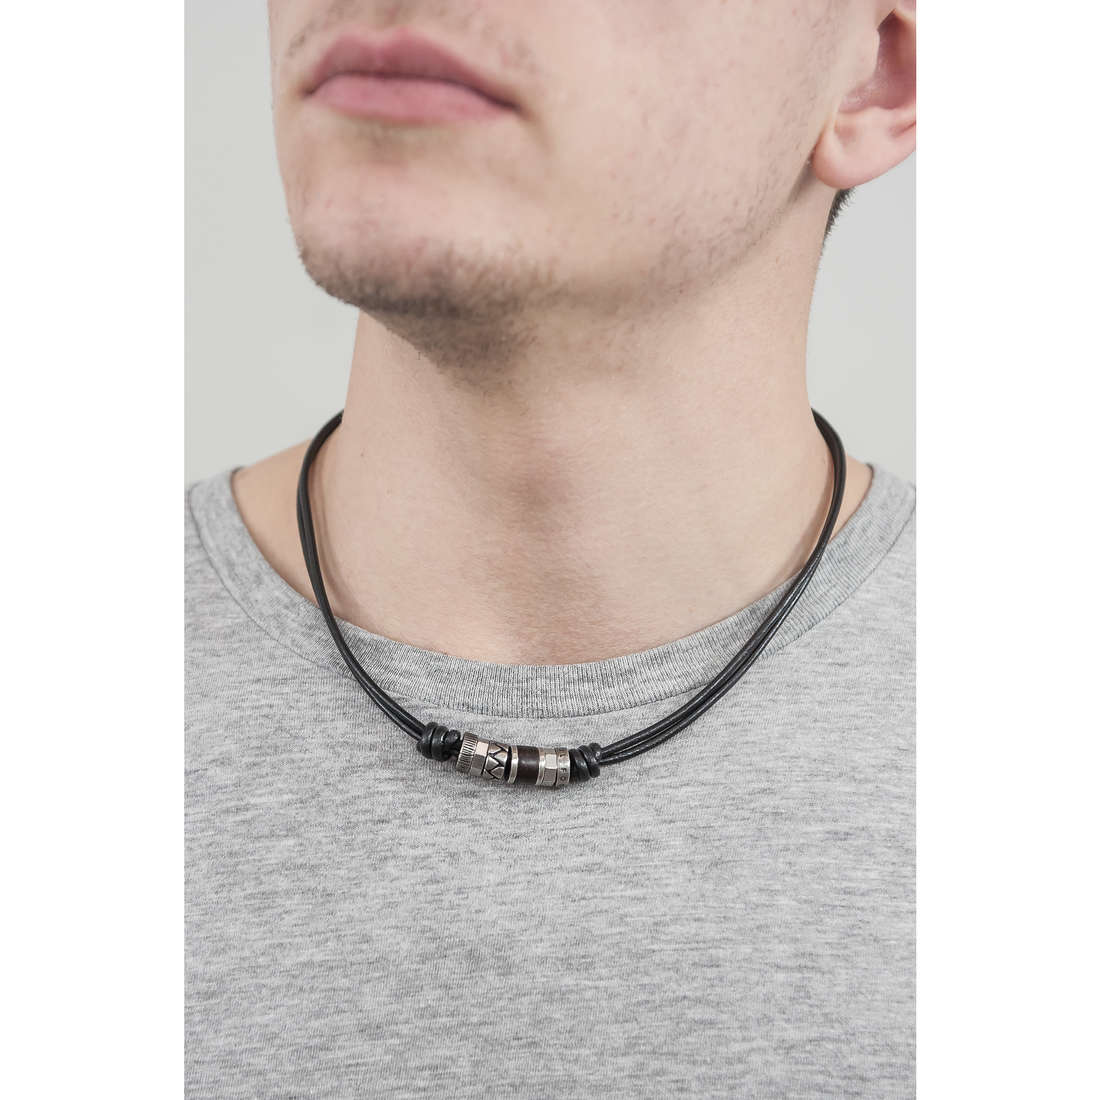 Fossil necklaces man JF84068040 indosso